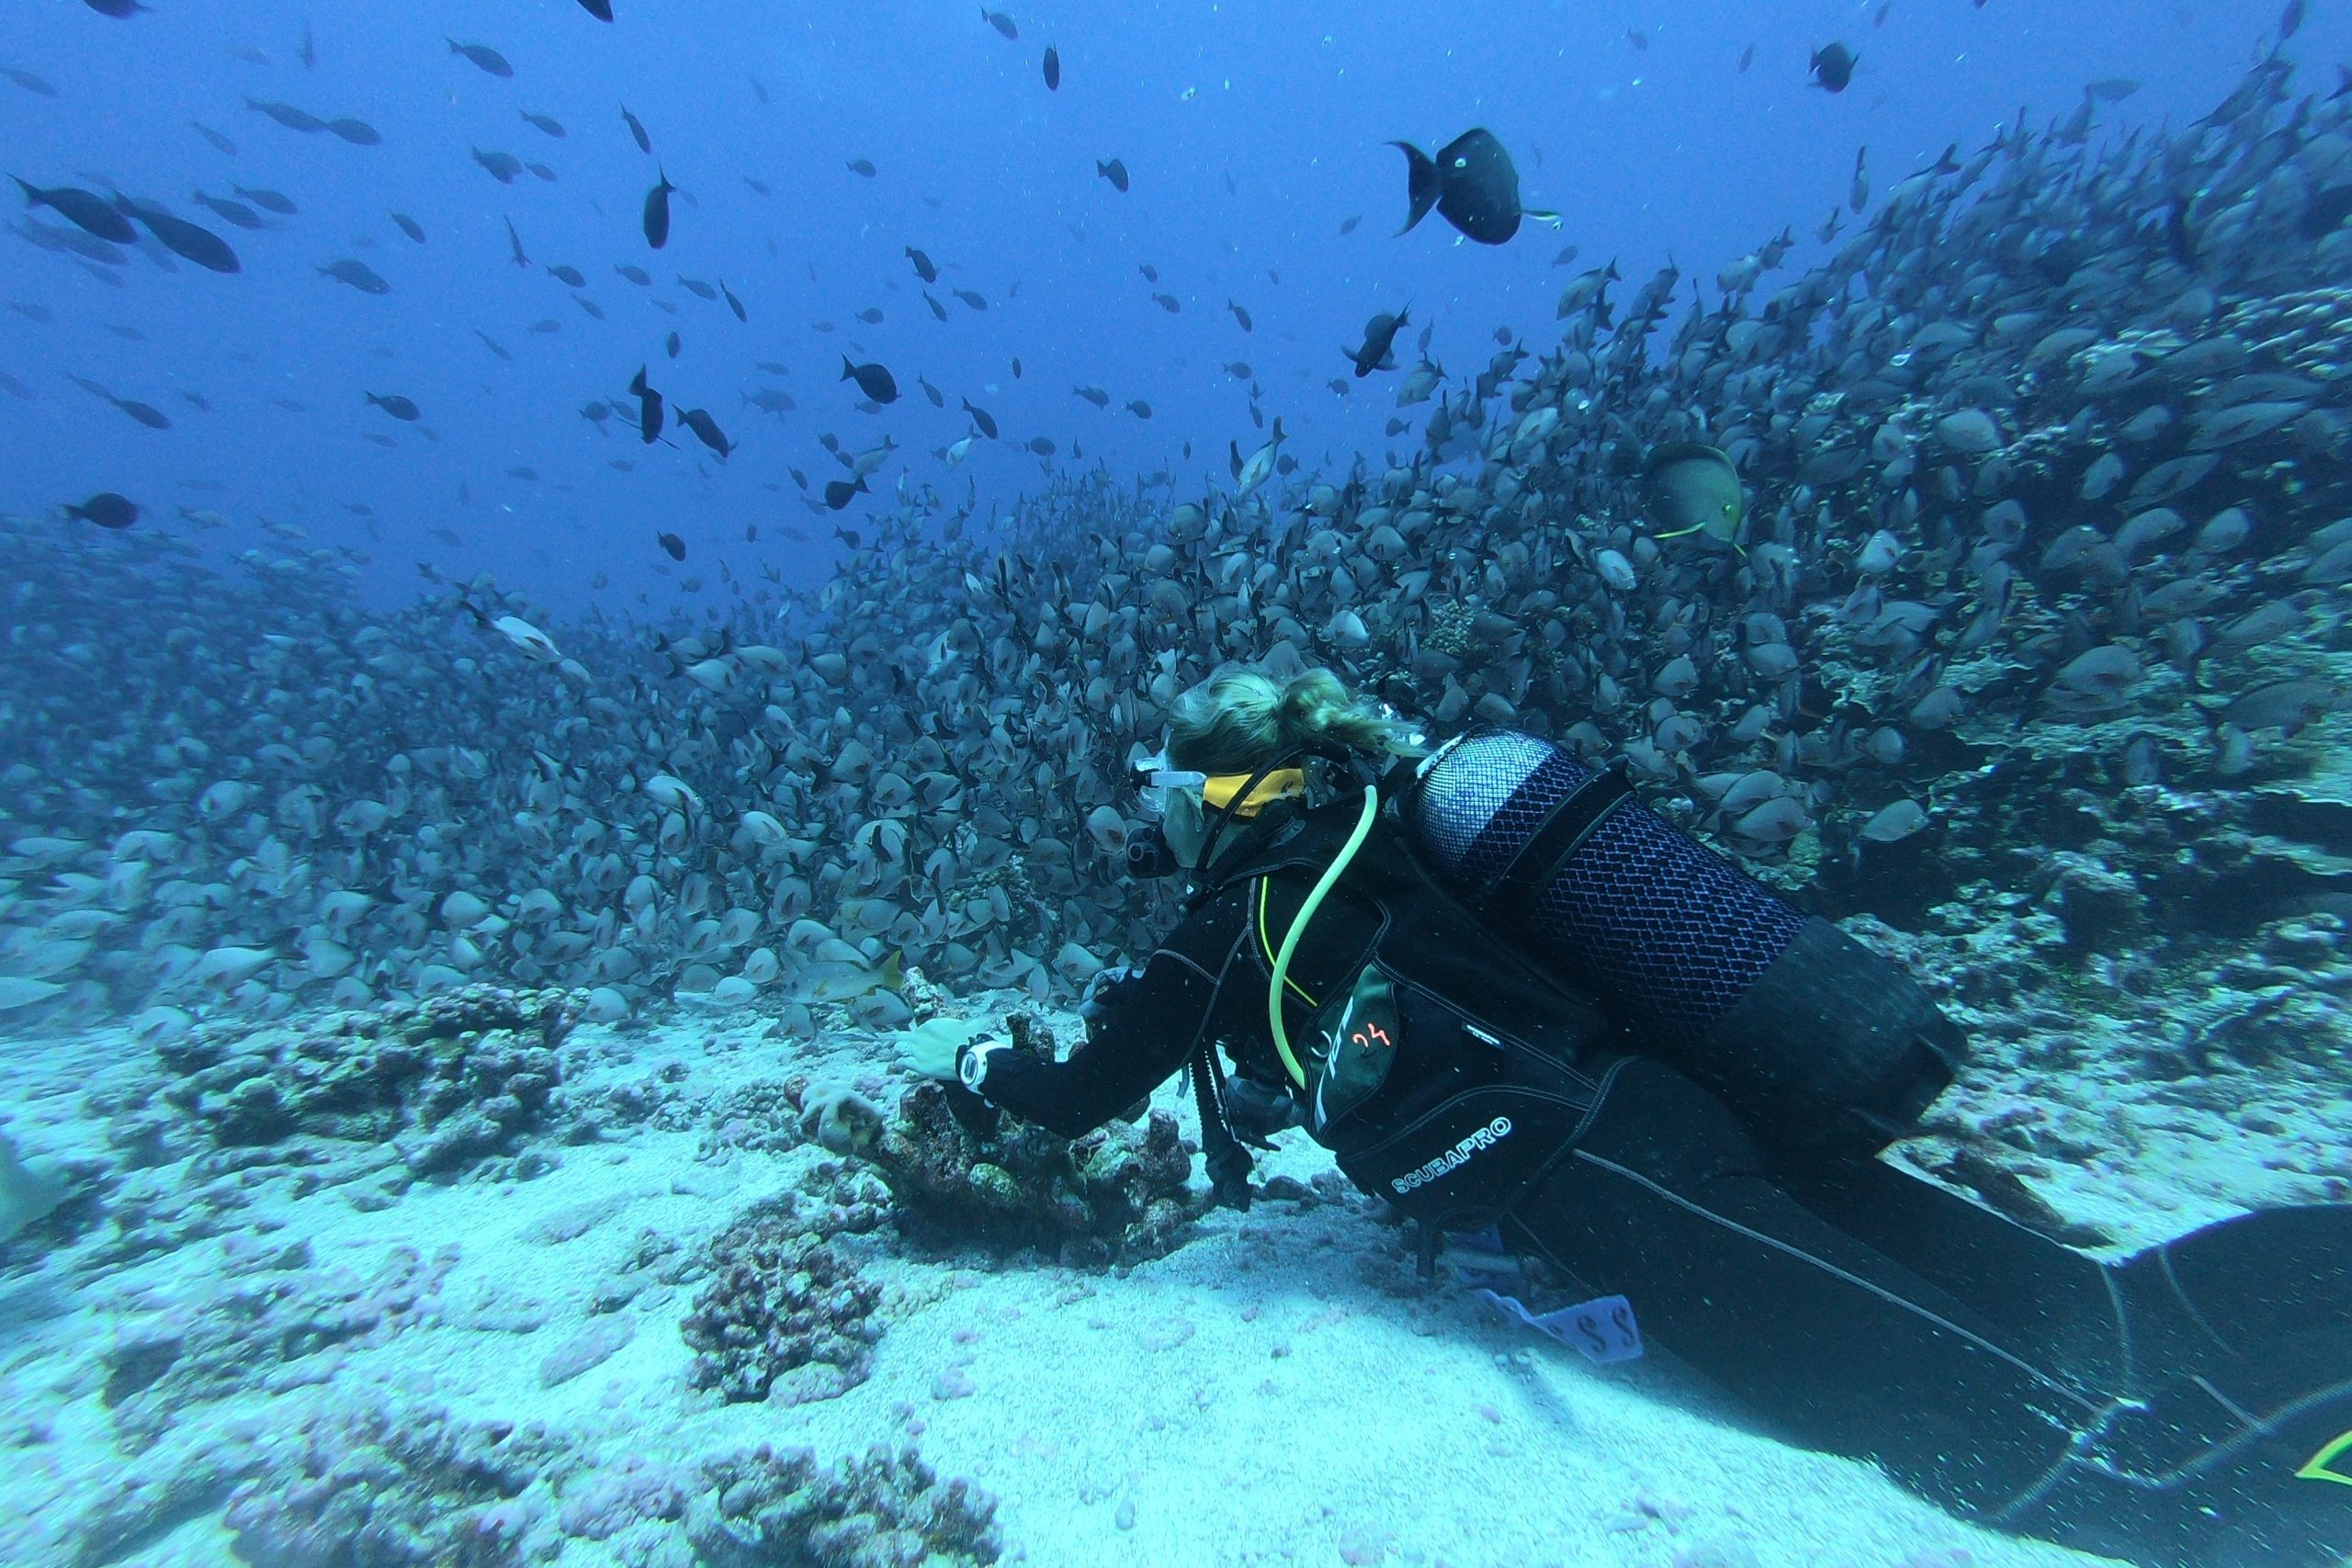 Try scuba diving at Sabang - Things to Do in Mindoro